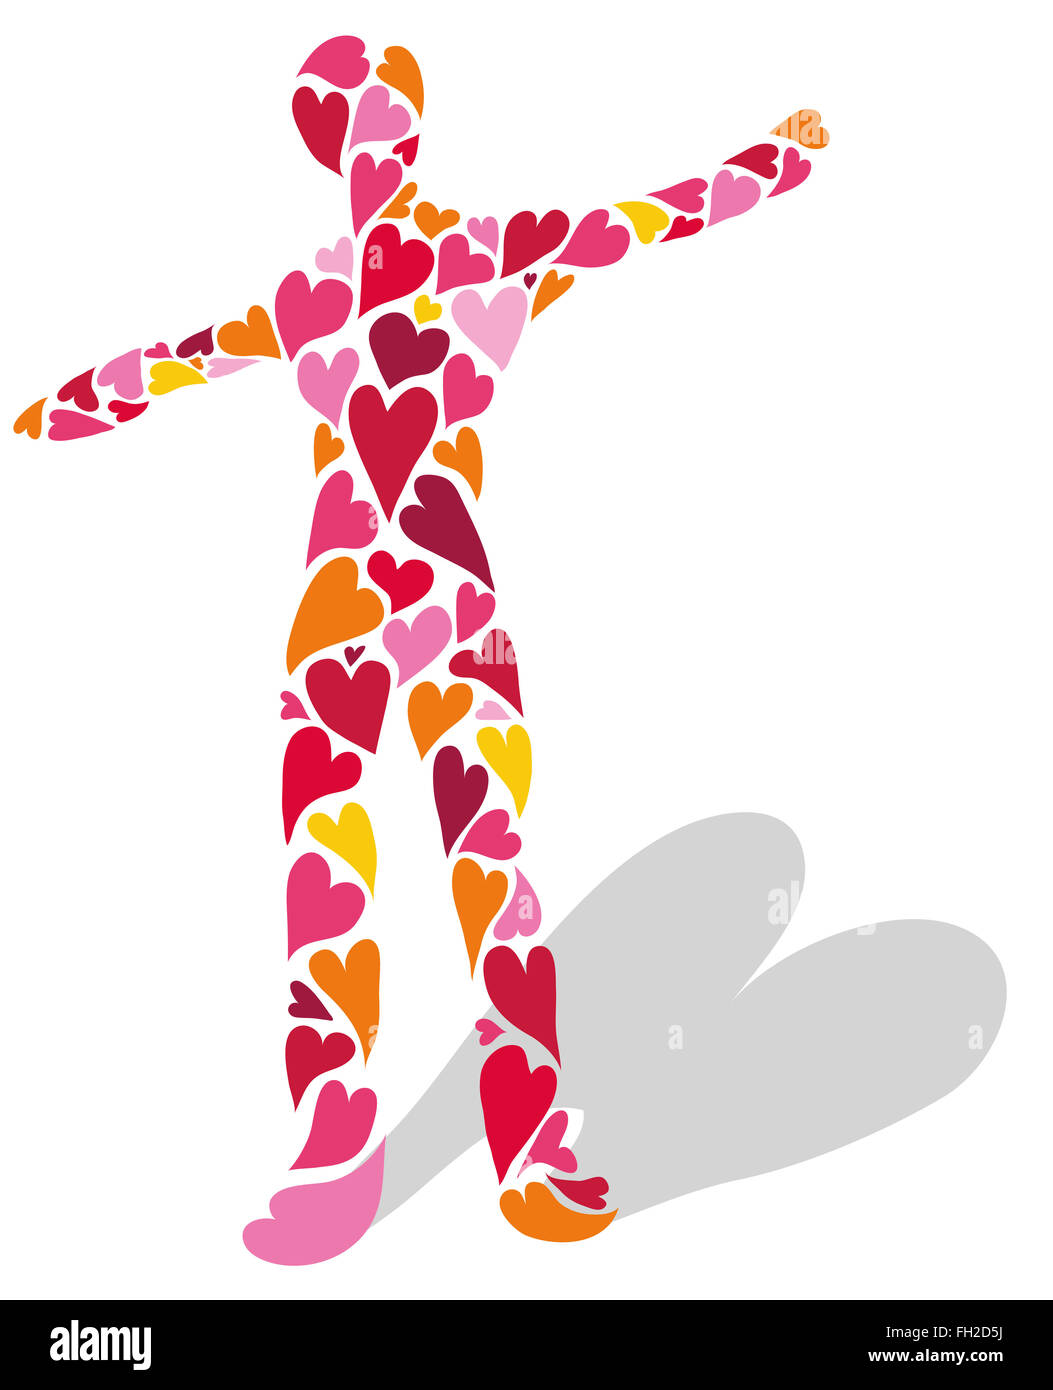 Human made of hearts. Symbol of love. - Stock Image